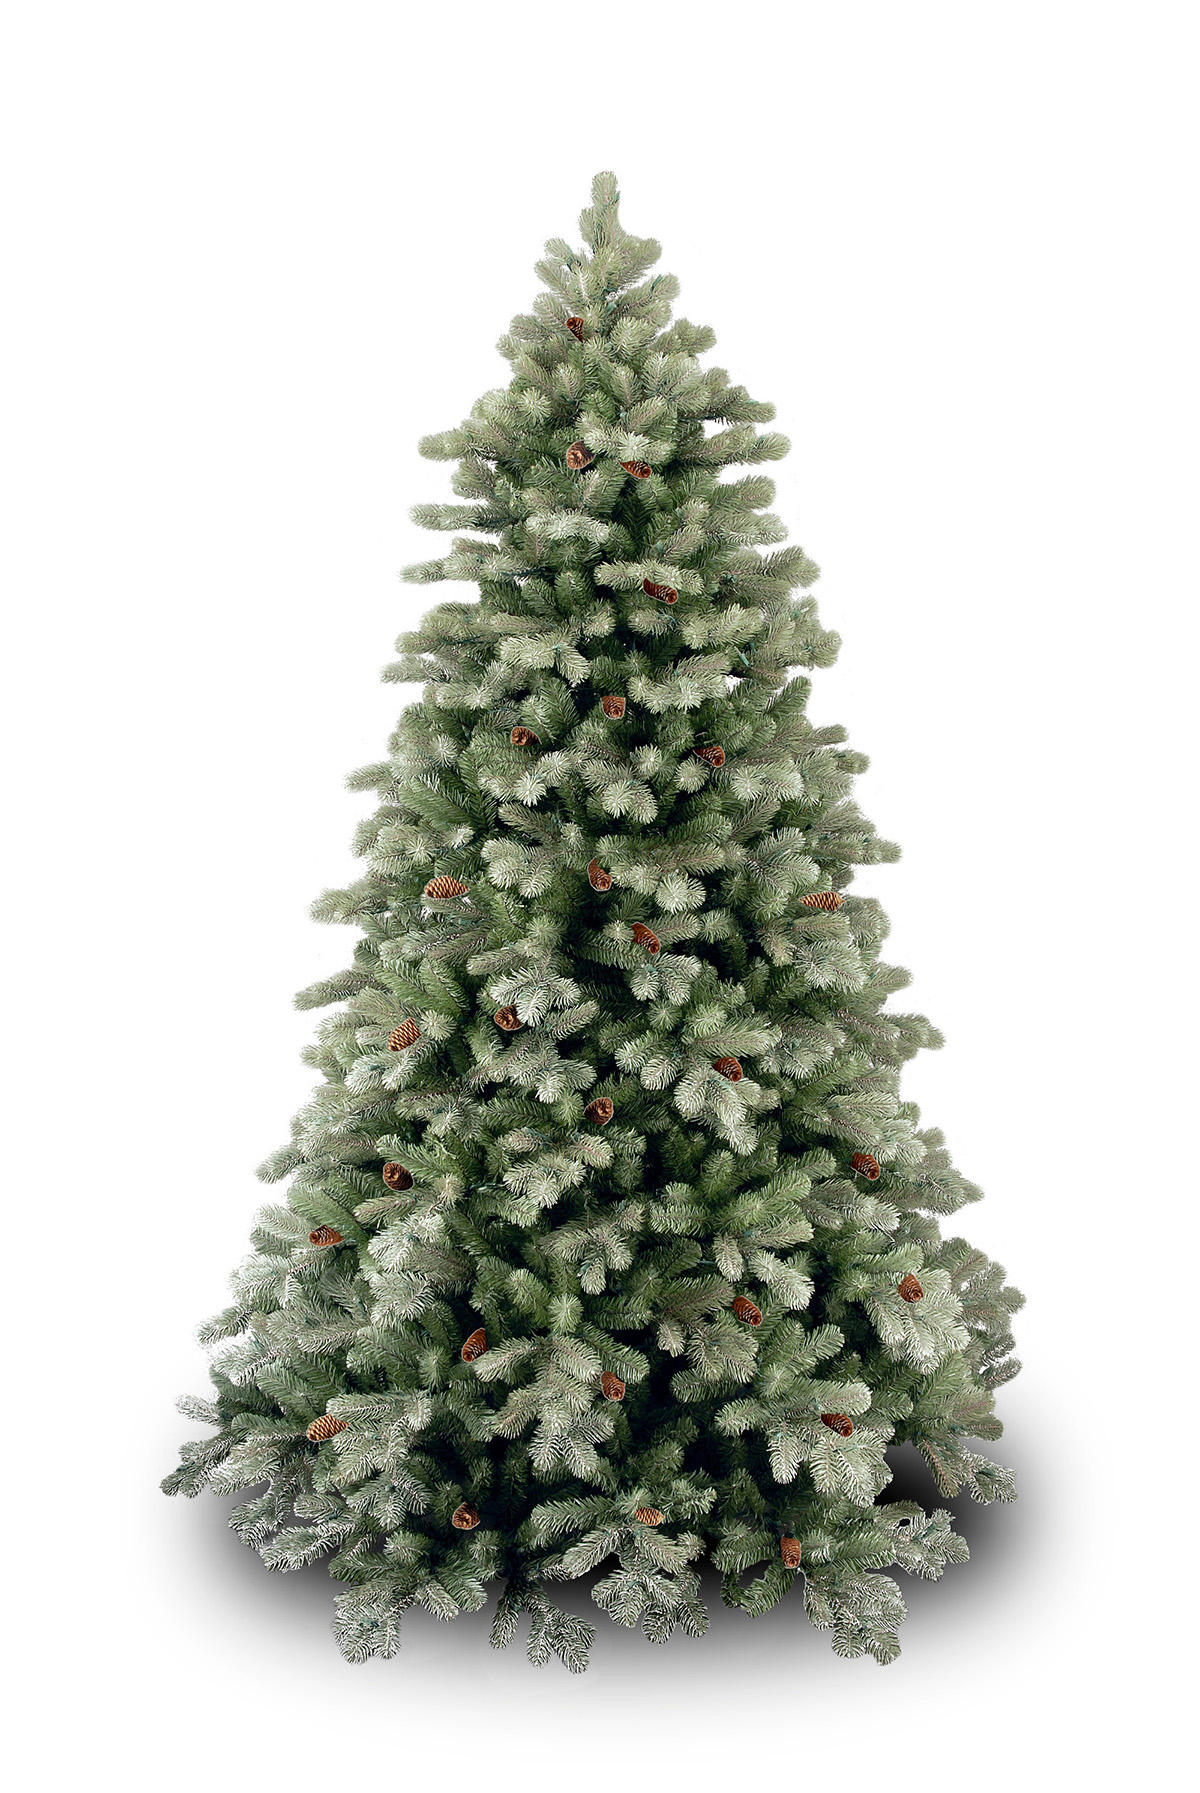 1200x1793px 5 Beautiful 9ft Christmas Tree Picture in Others